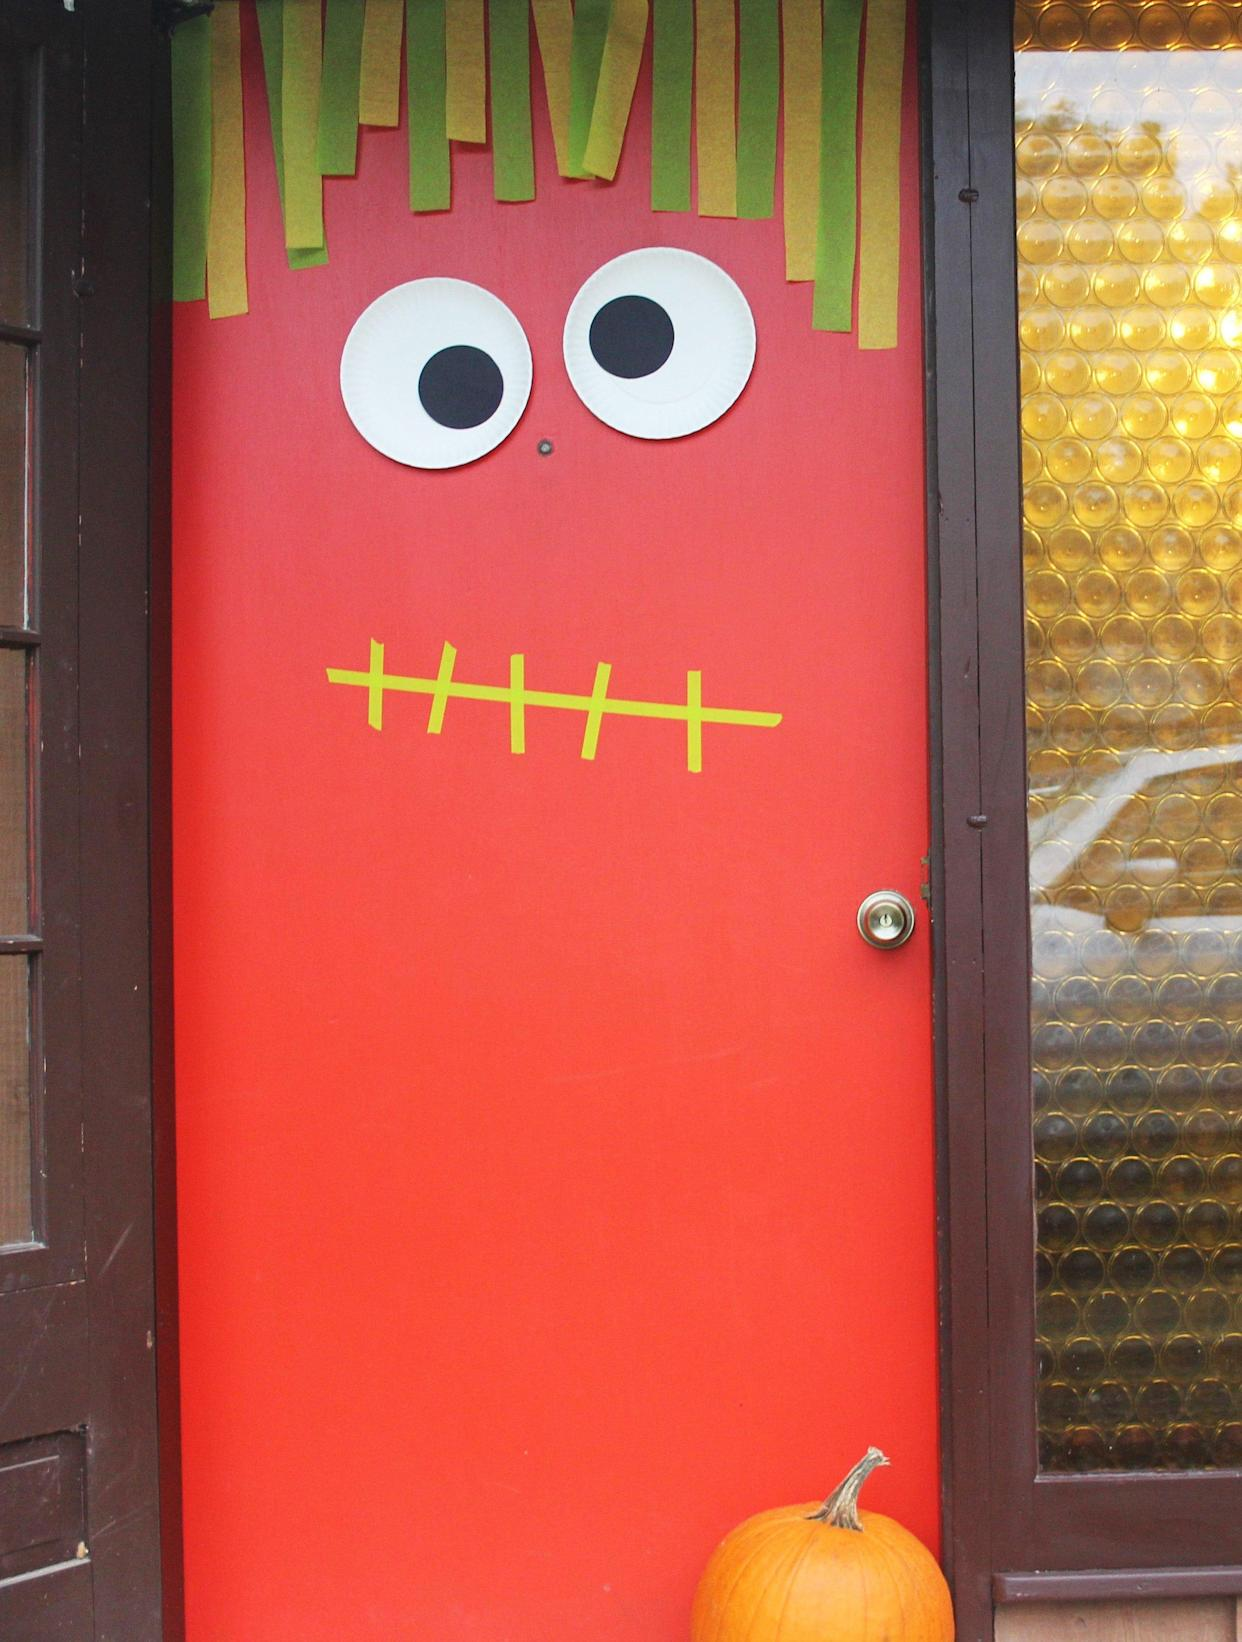 Bright red door with cutout eyes and a strip of paper hanging down like hair